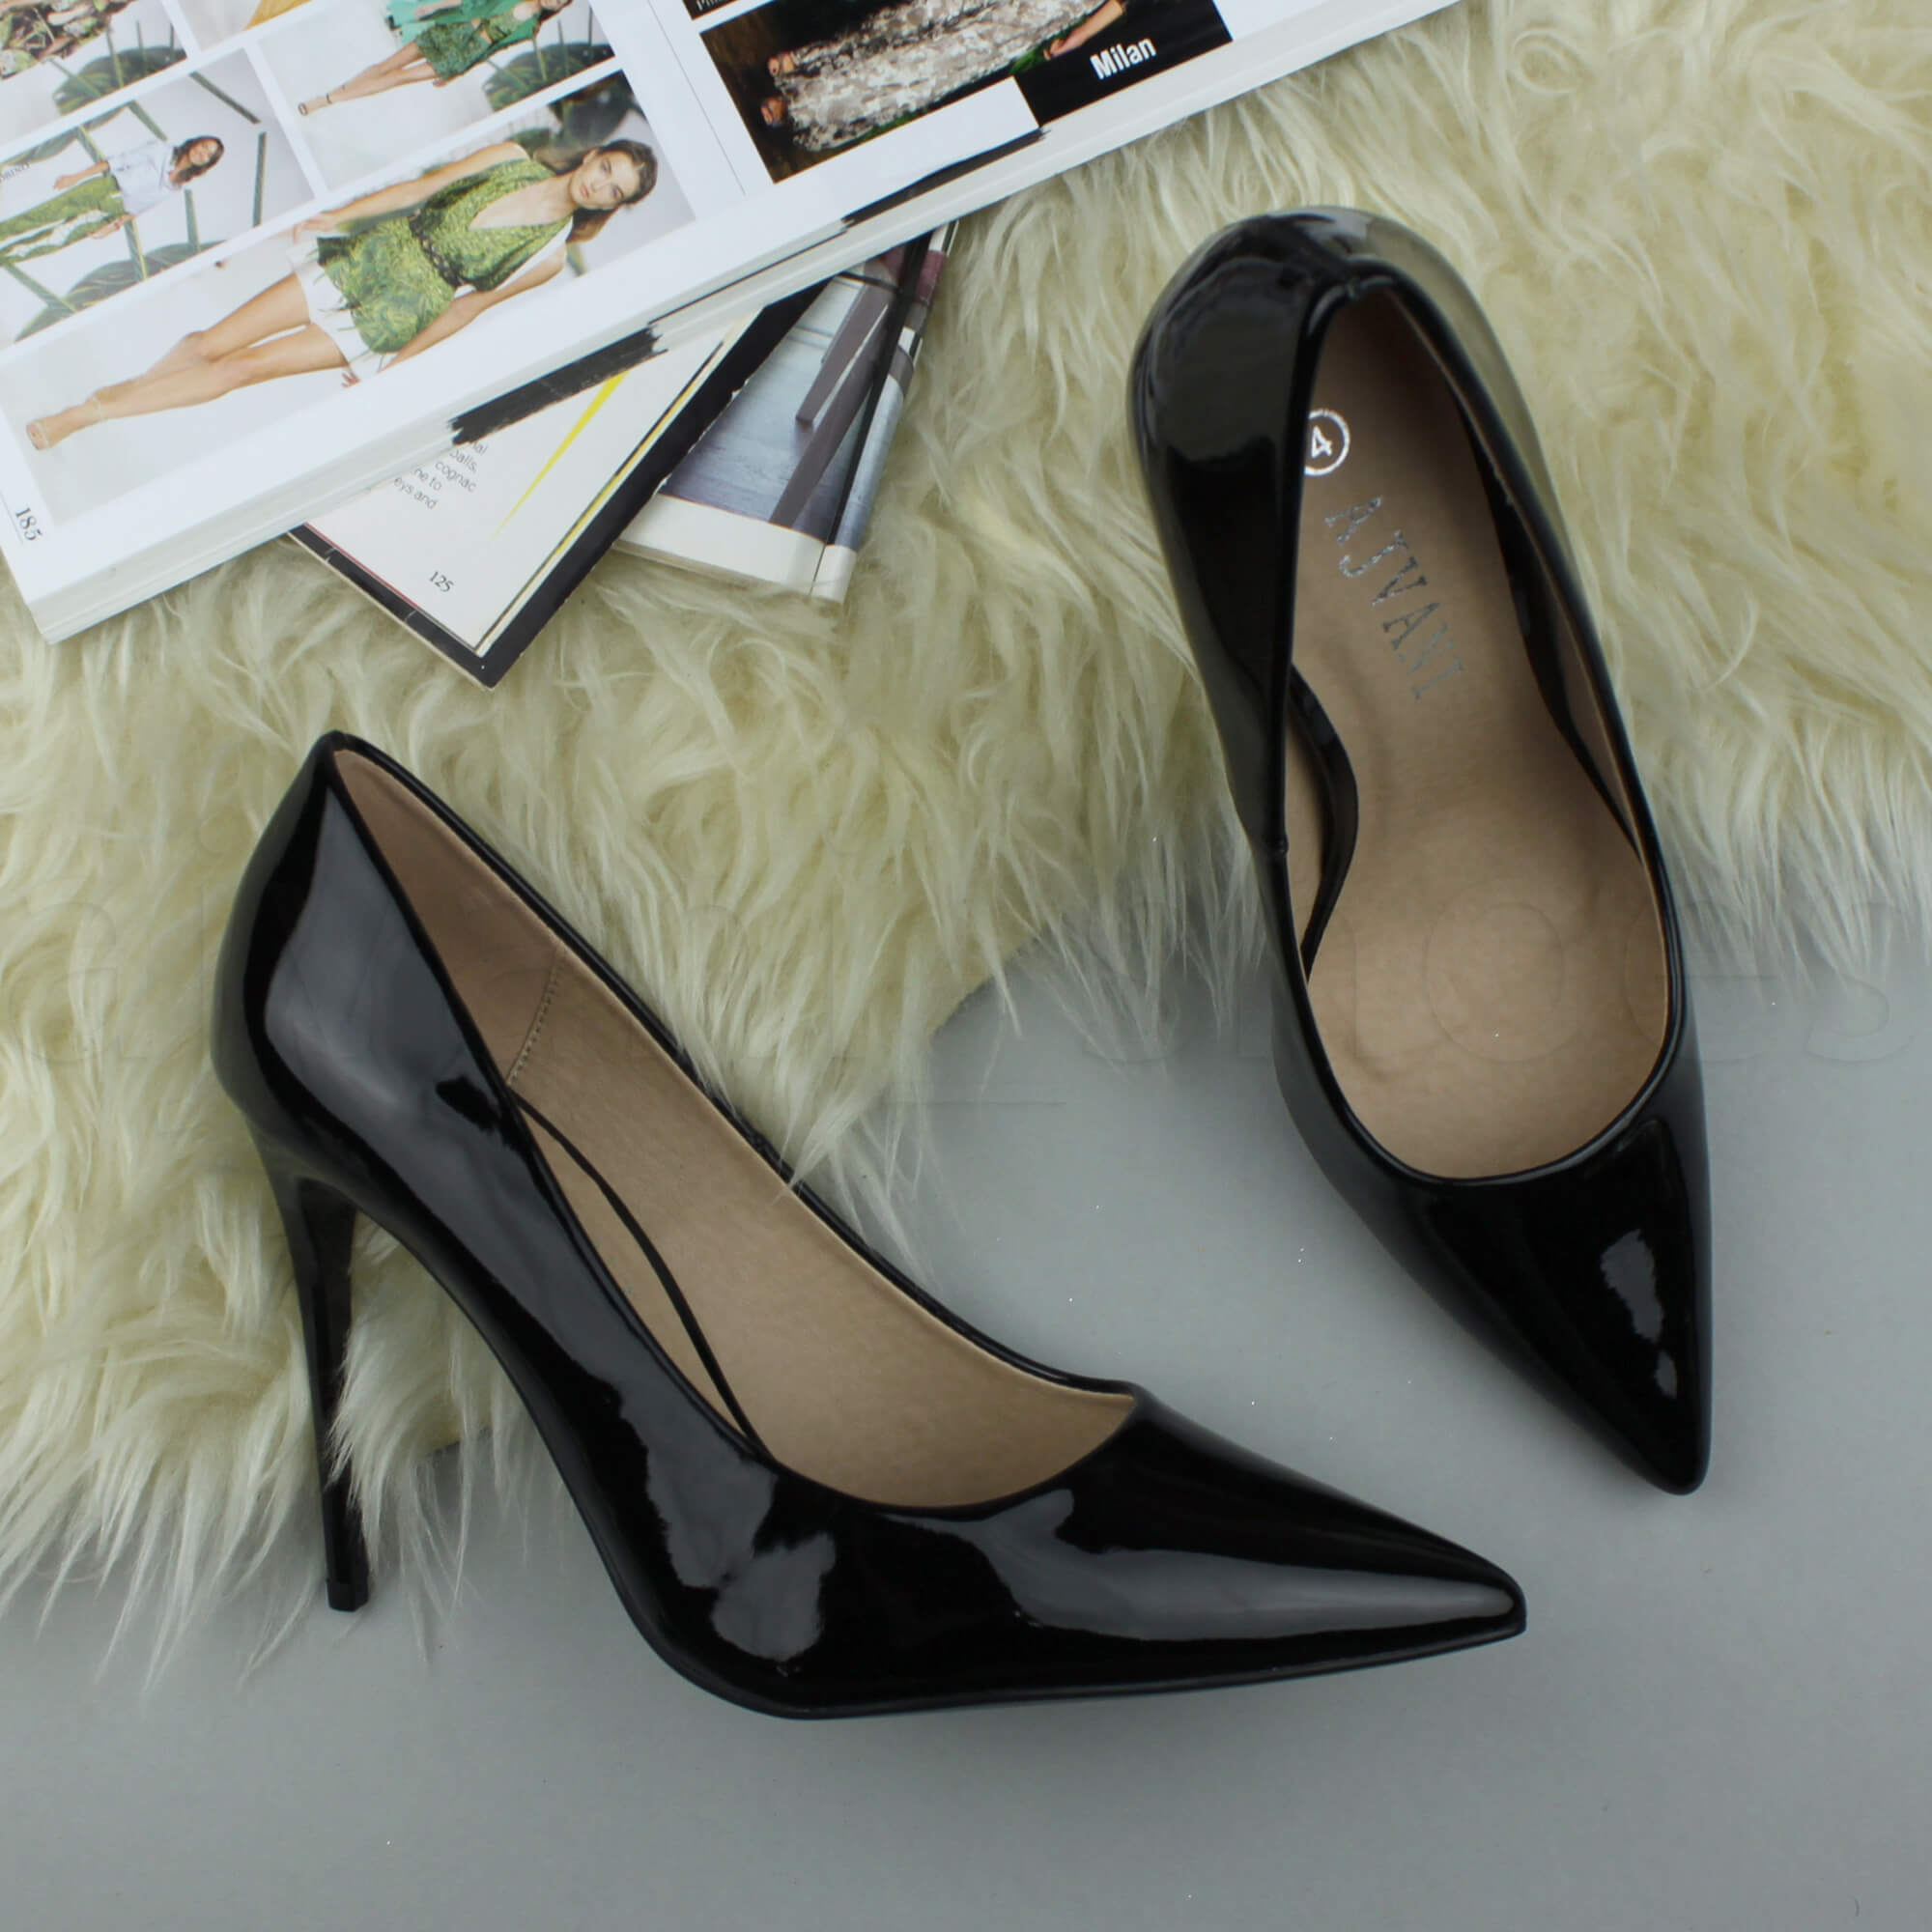 WOMENS-LADIES-HIGH-HEEL-POINTED-CONTRAST-COURT-SMART-PARTY-WORK-SHOES-PUMPS-SIZE thumbnail 21